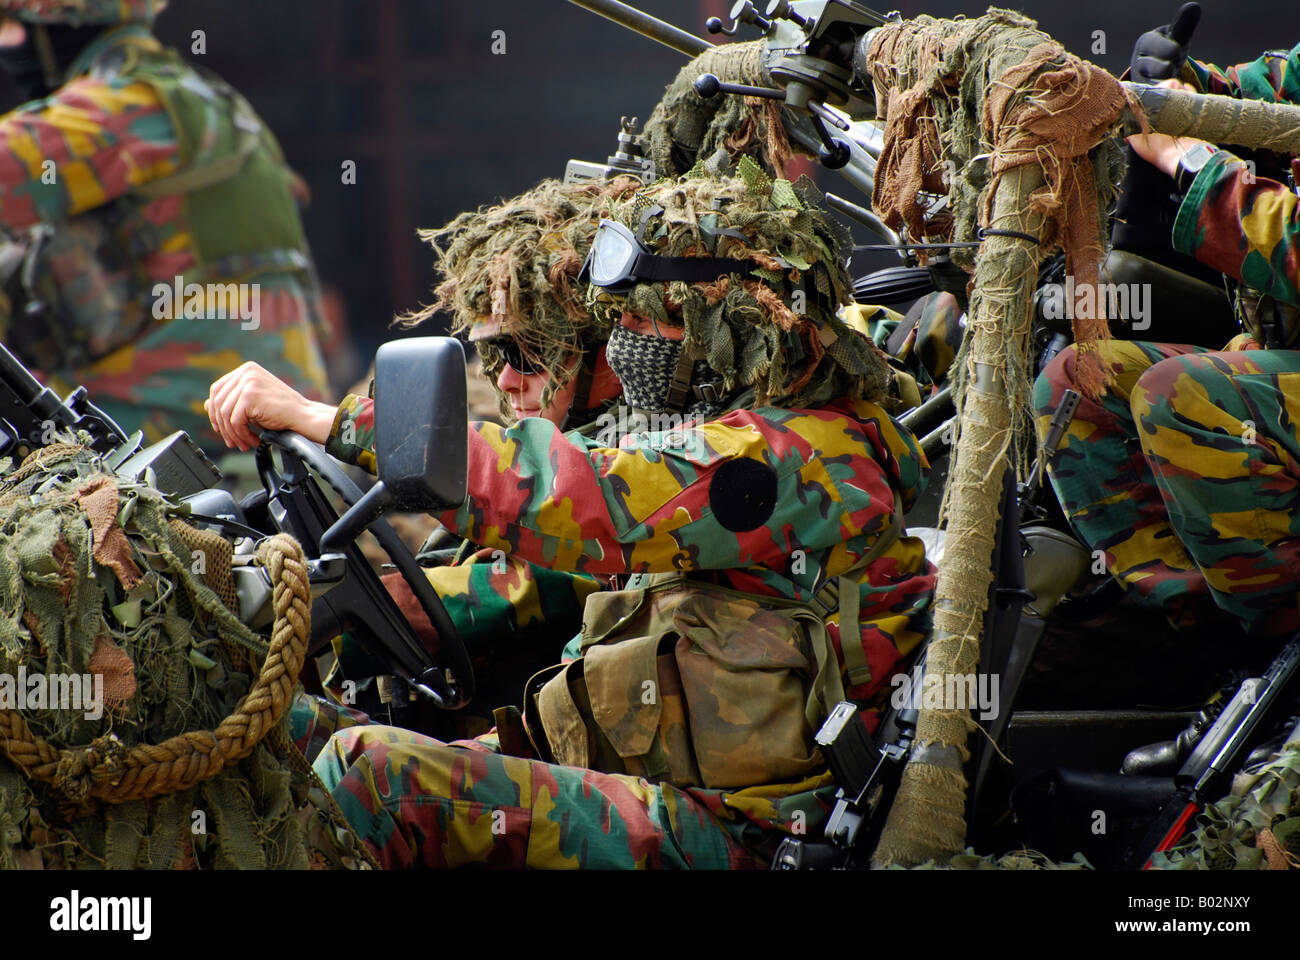 Members of a recce or scout team of the Belgian Army. - Stock Image